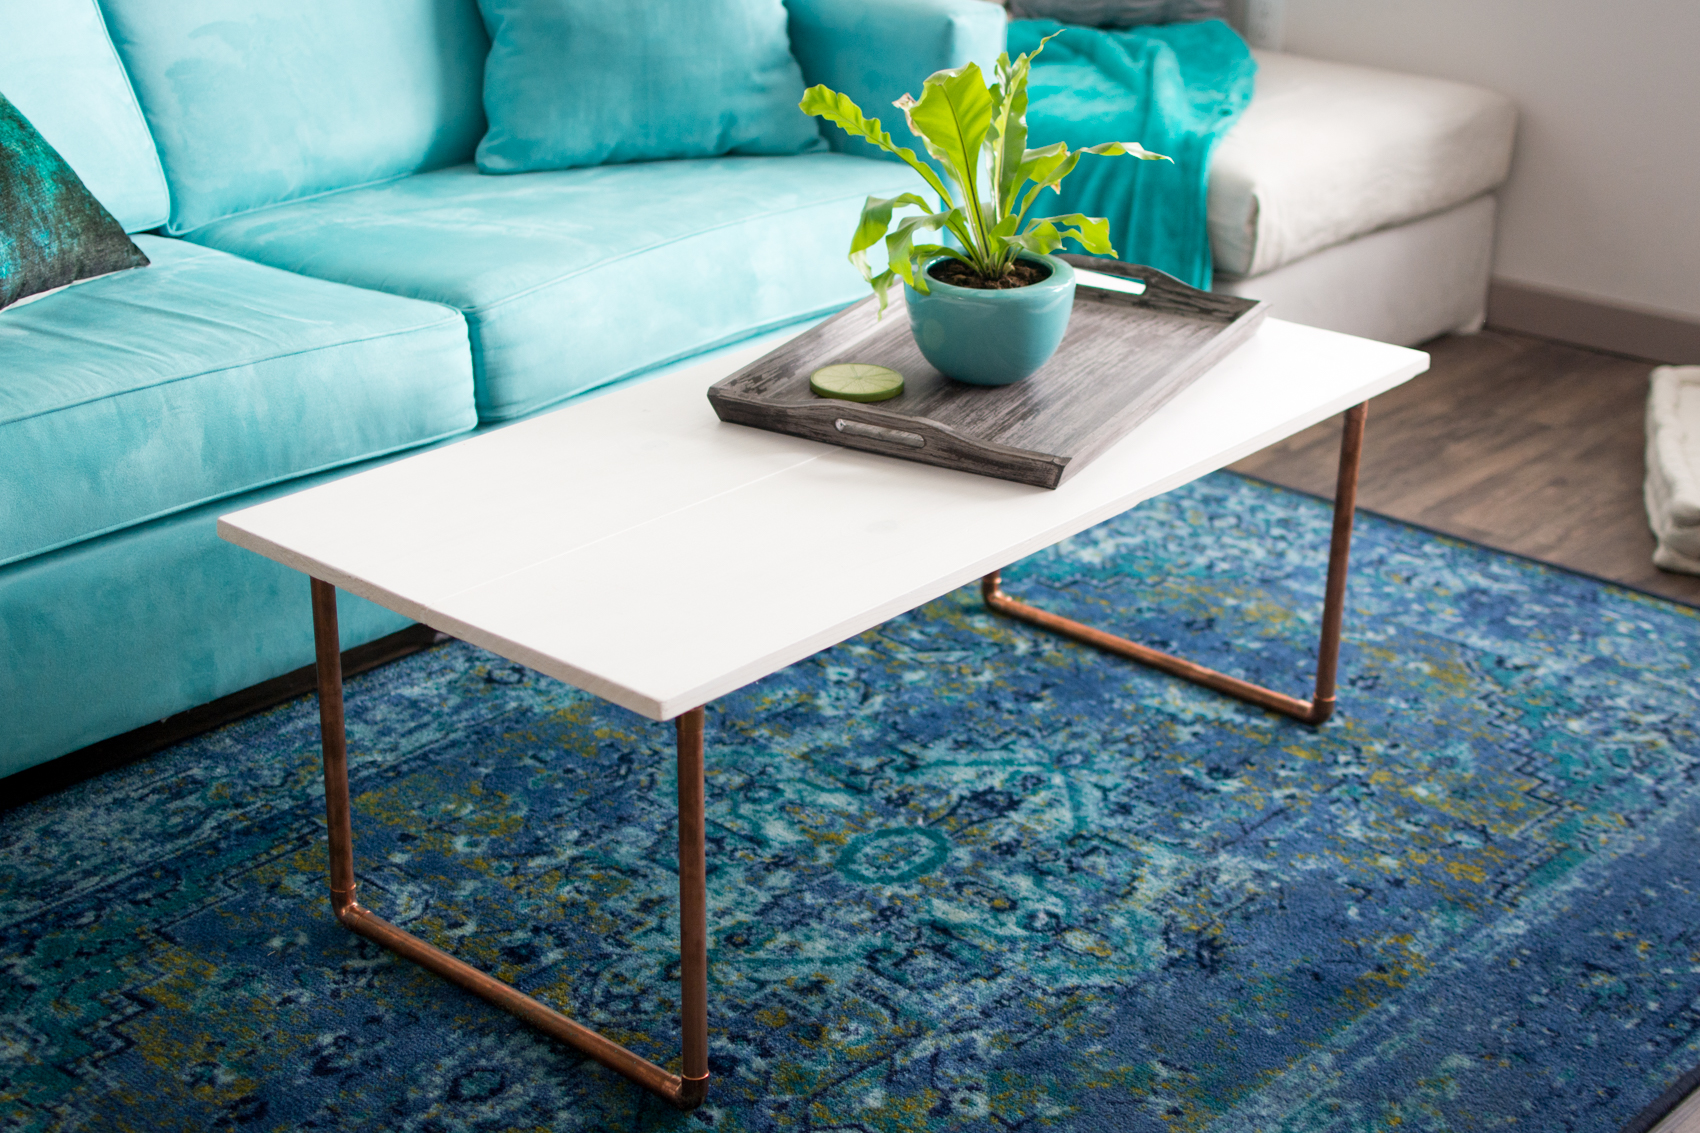 DIY Wood & Copper Coffee Table